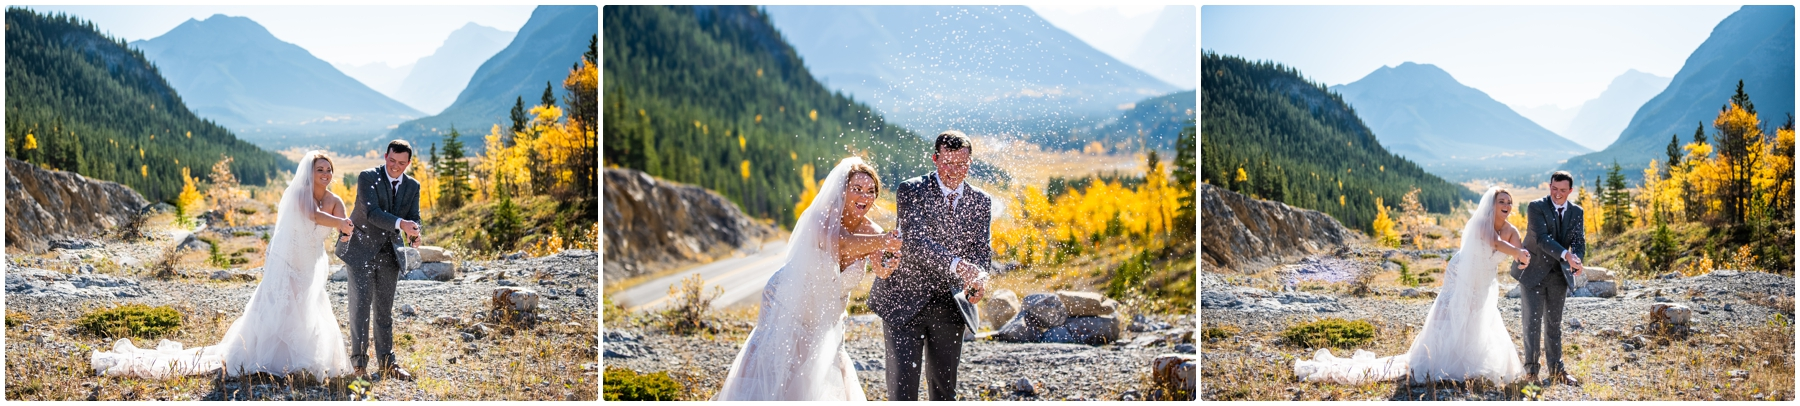 Canmore Wedding Photographers- Rocky Mountain Intimate Elopement Photography